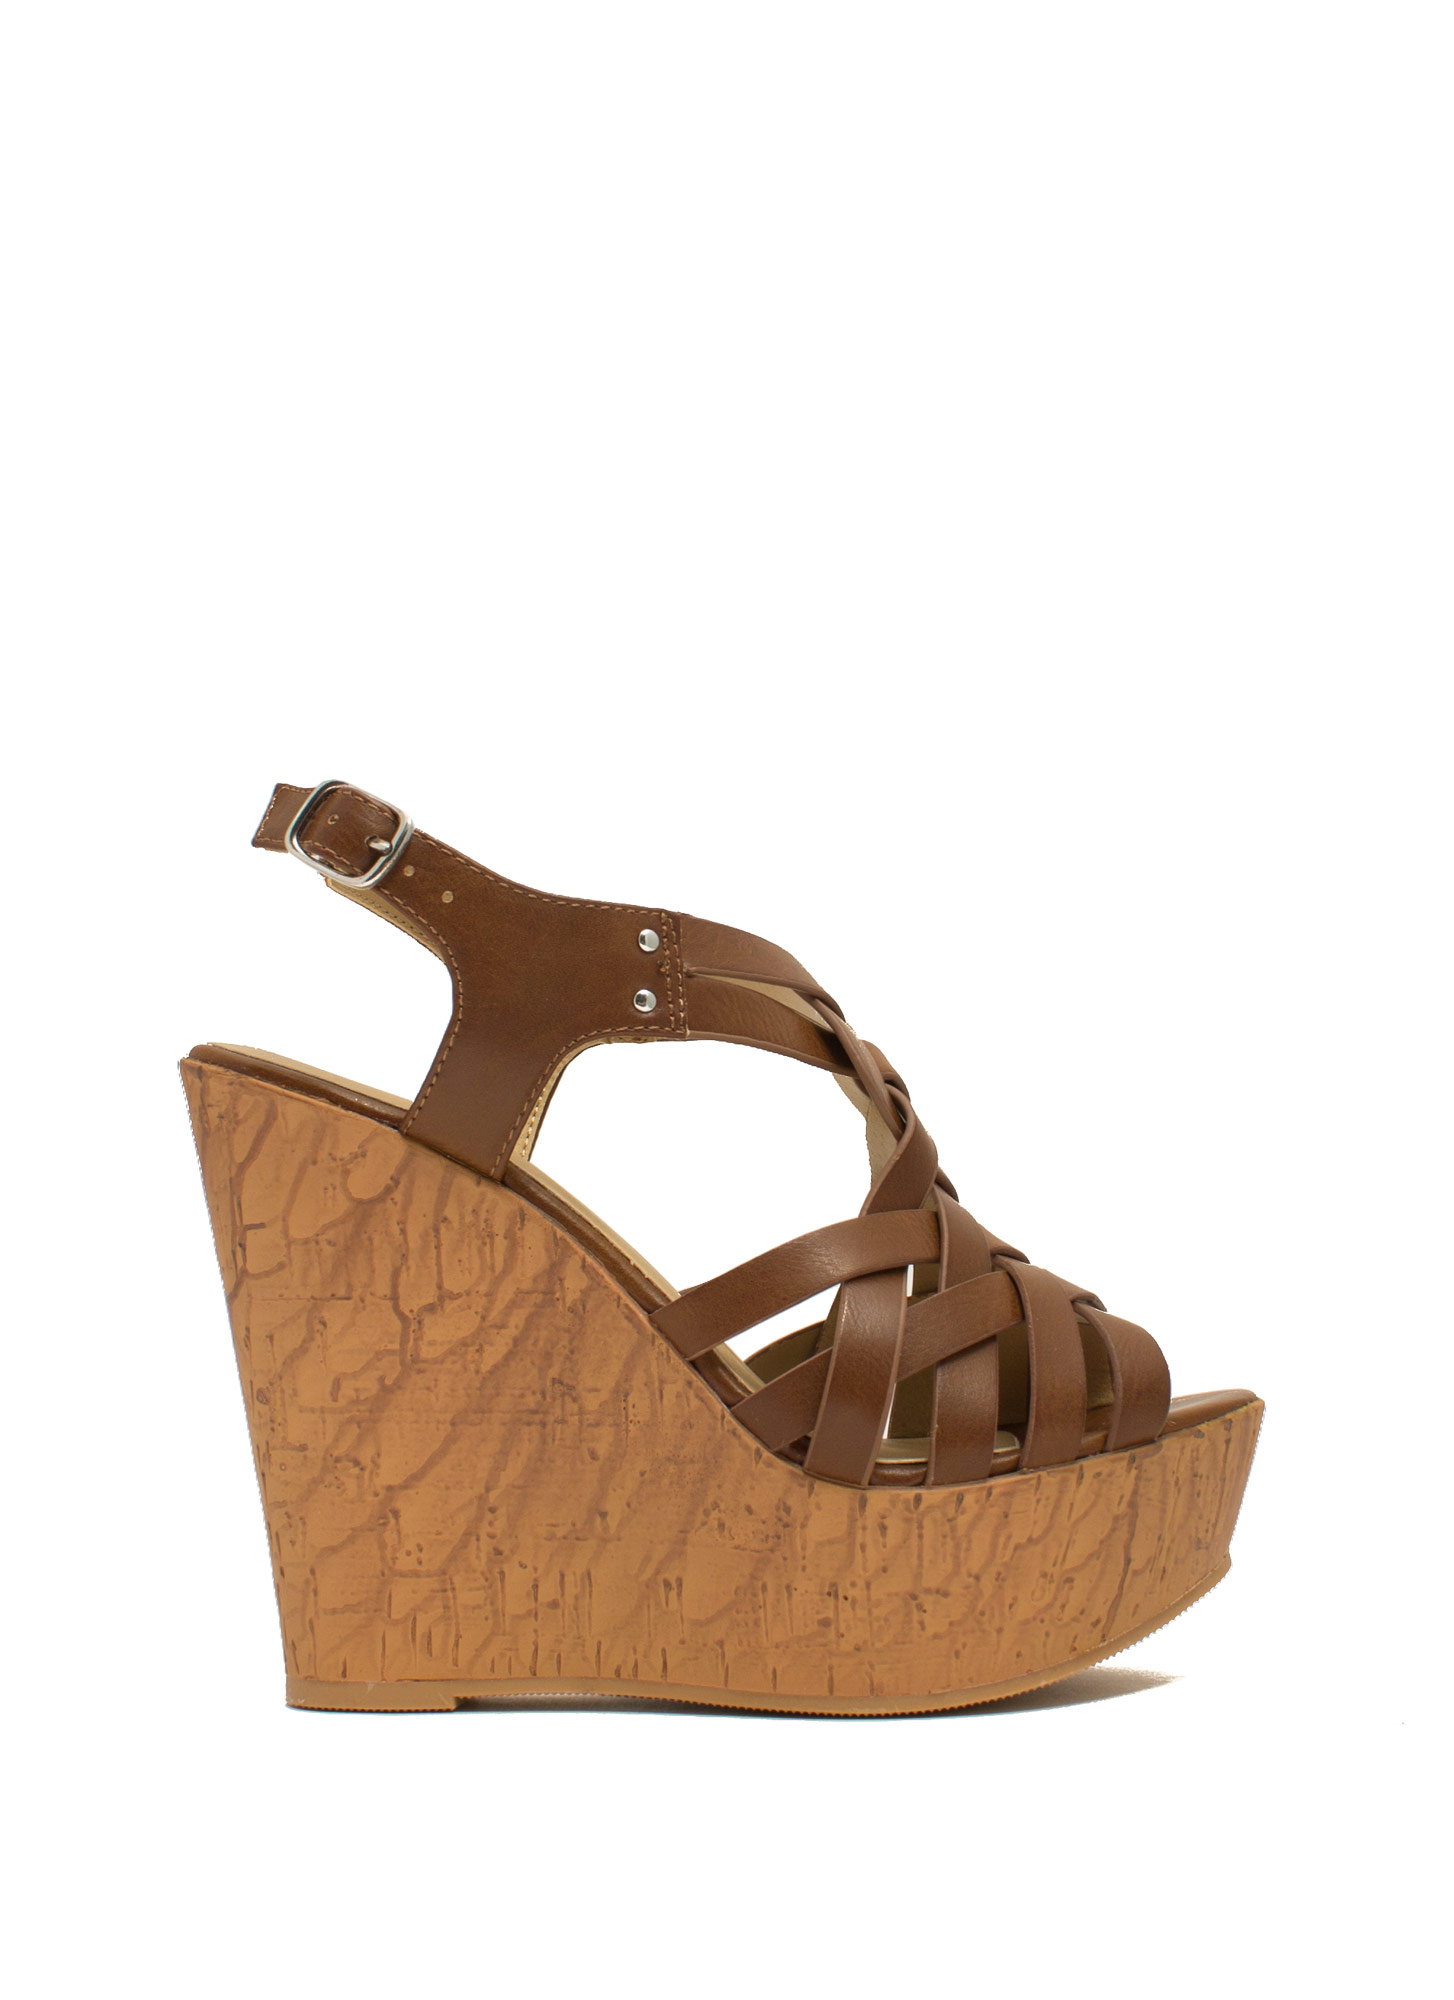 Weave It Alone Platform Wedges TAN